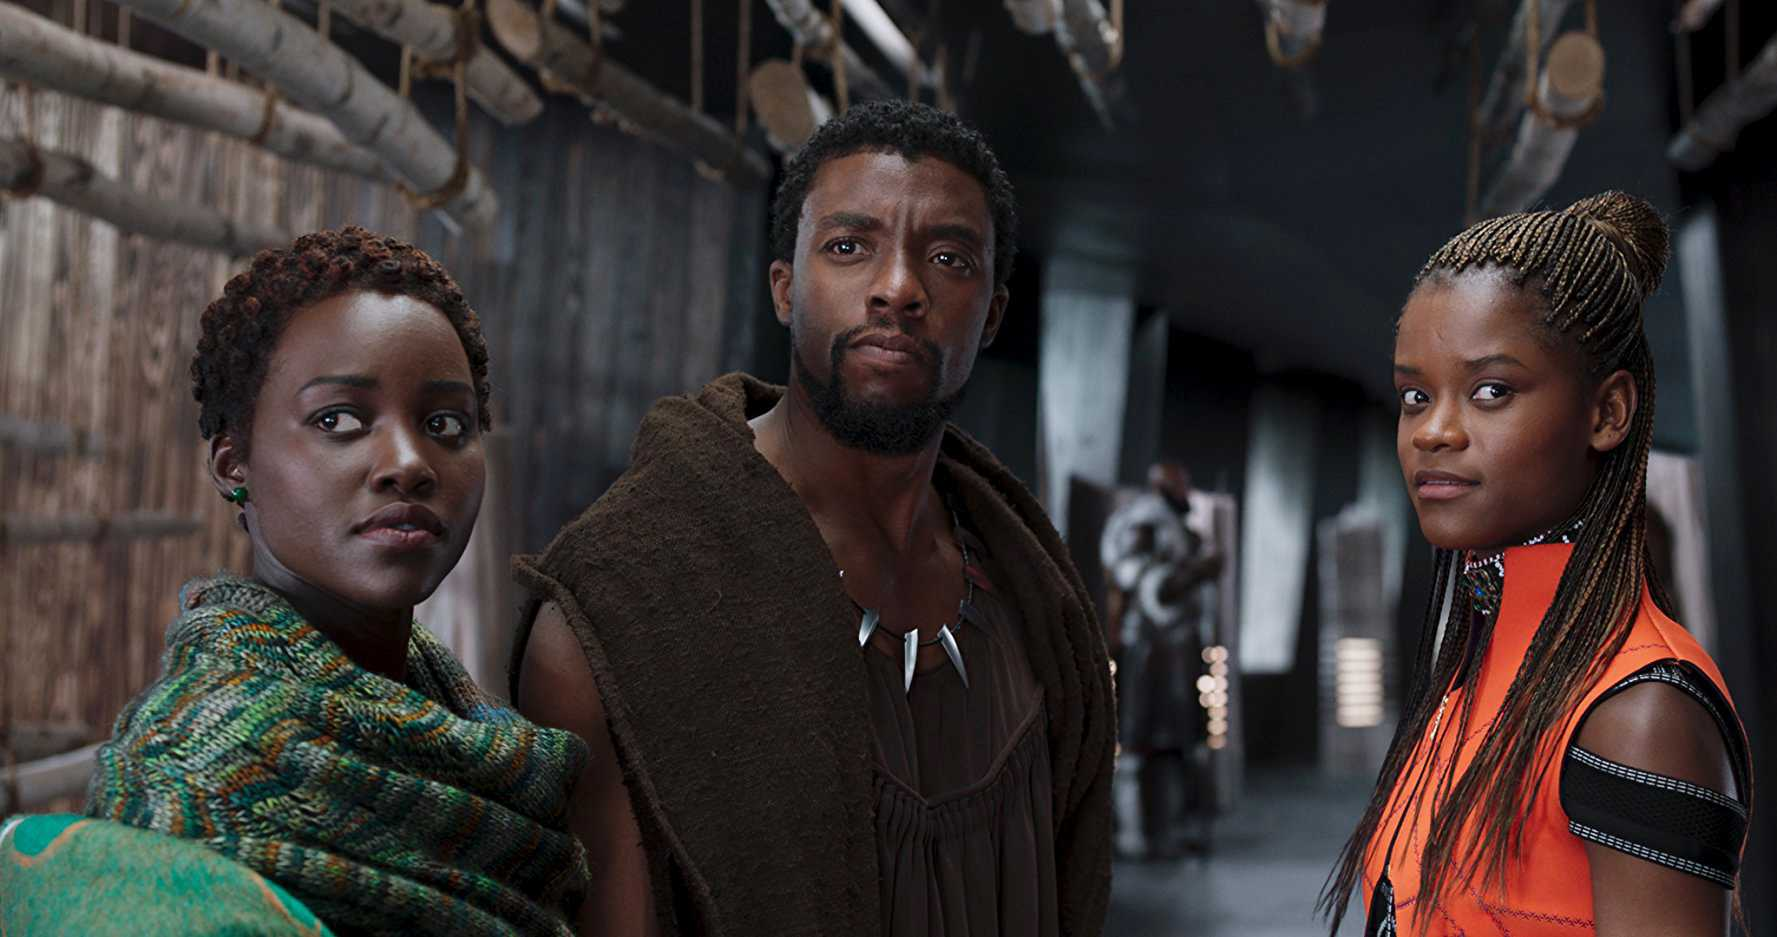 "DISNEY ""Black Panther"" opened with a $201 million opening over the weekend, making it the fifth highest opening of all time and the highest opening in the month of February. Here, Nakia (Lupita Nyong'o), King T'Challa (Chadwick Boseman) and Princess Shuri (Letitia Wright) are seen planning their next move in the film."